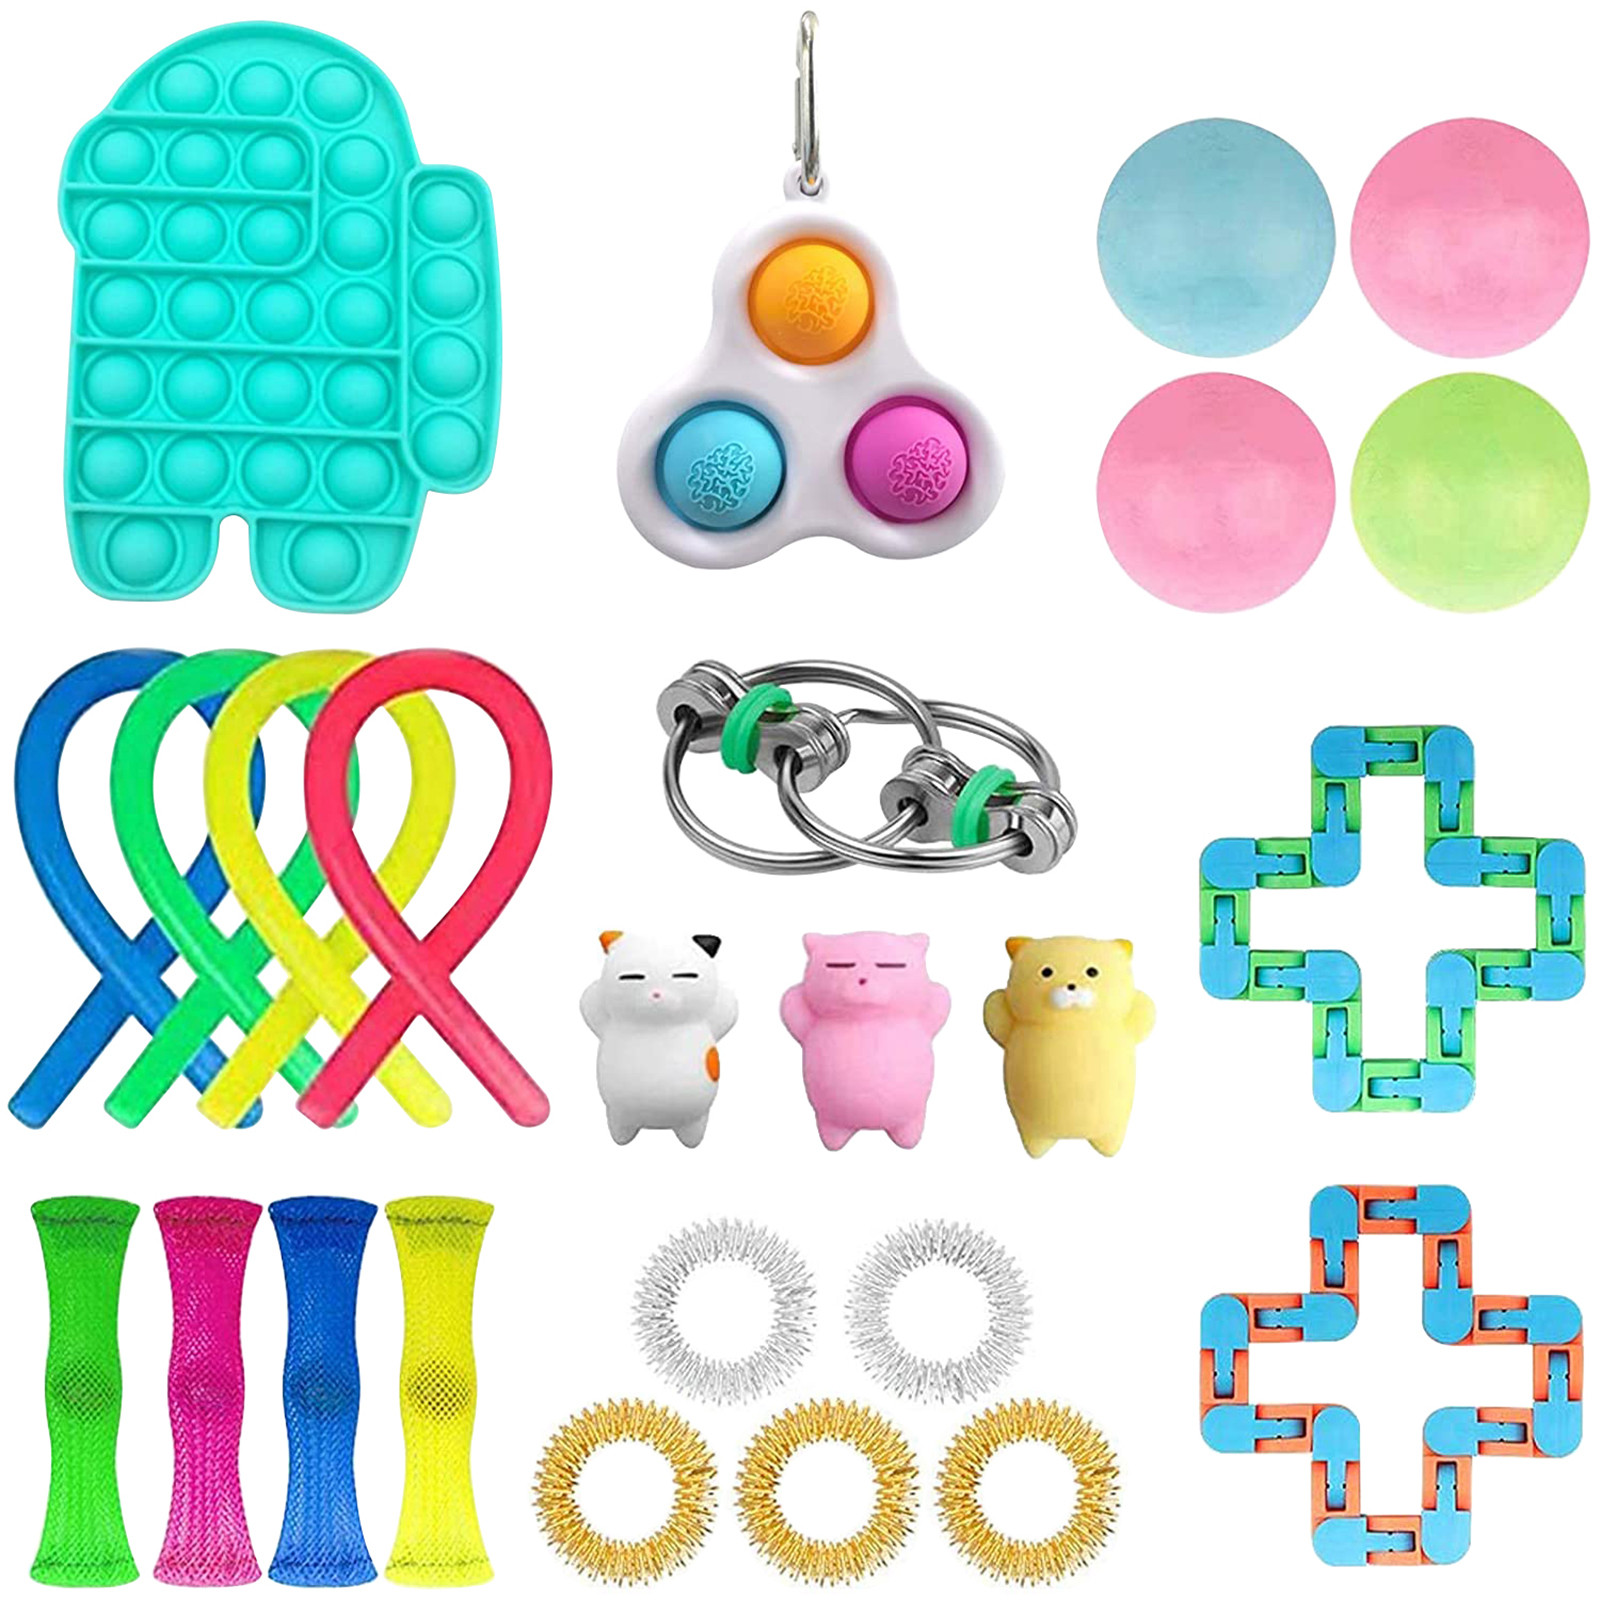 25PCS Toy Set Cheap Sensory Toys Pack for Kids or Adults Figetget Toys Pack Figit Toys img1